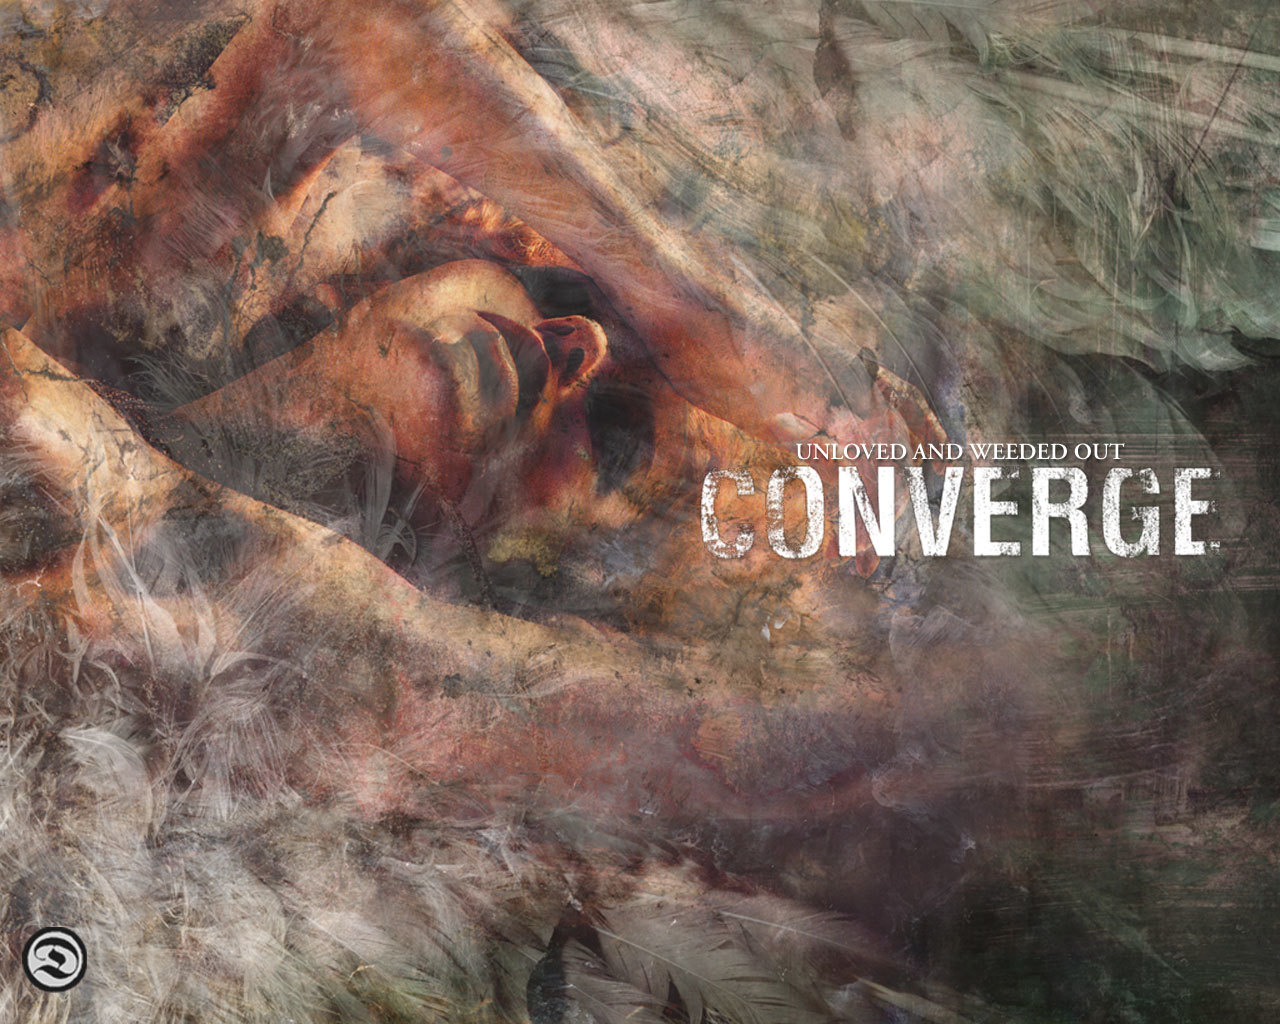 converge unloved Weeded Music HD Wallpaper